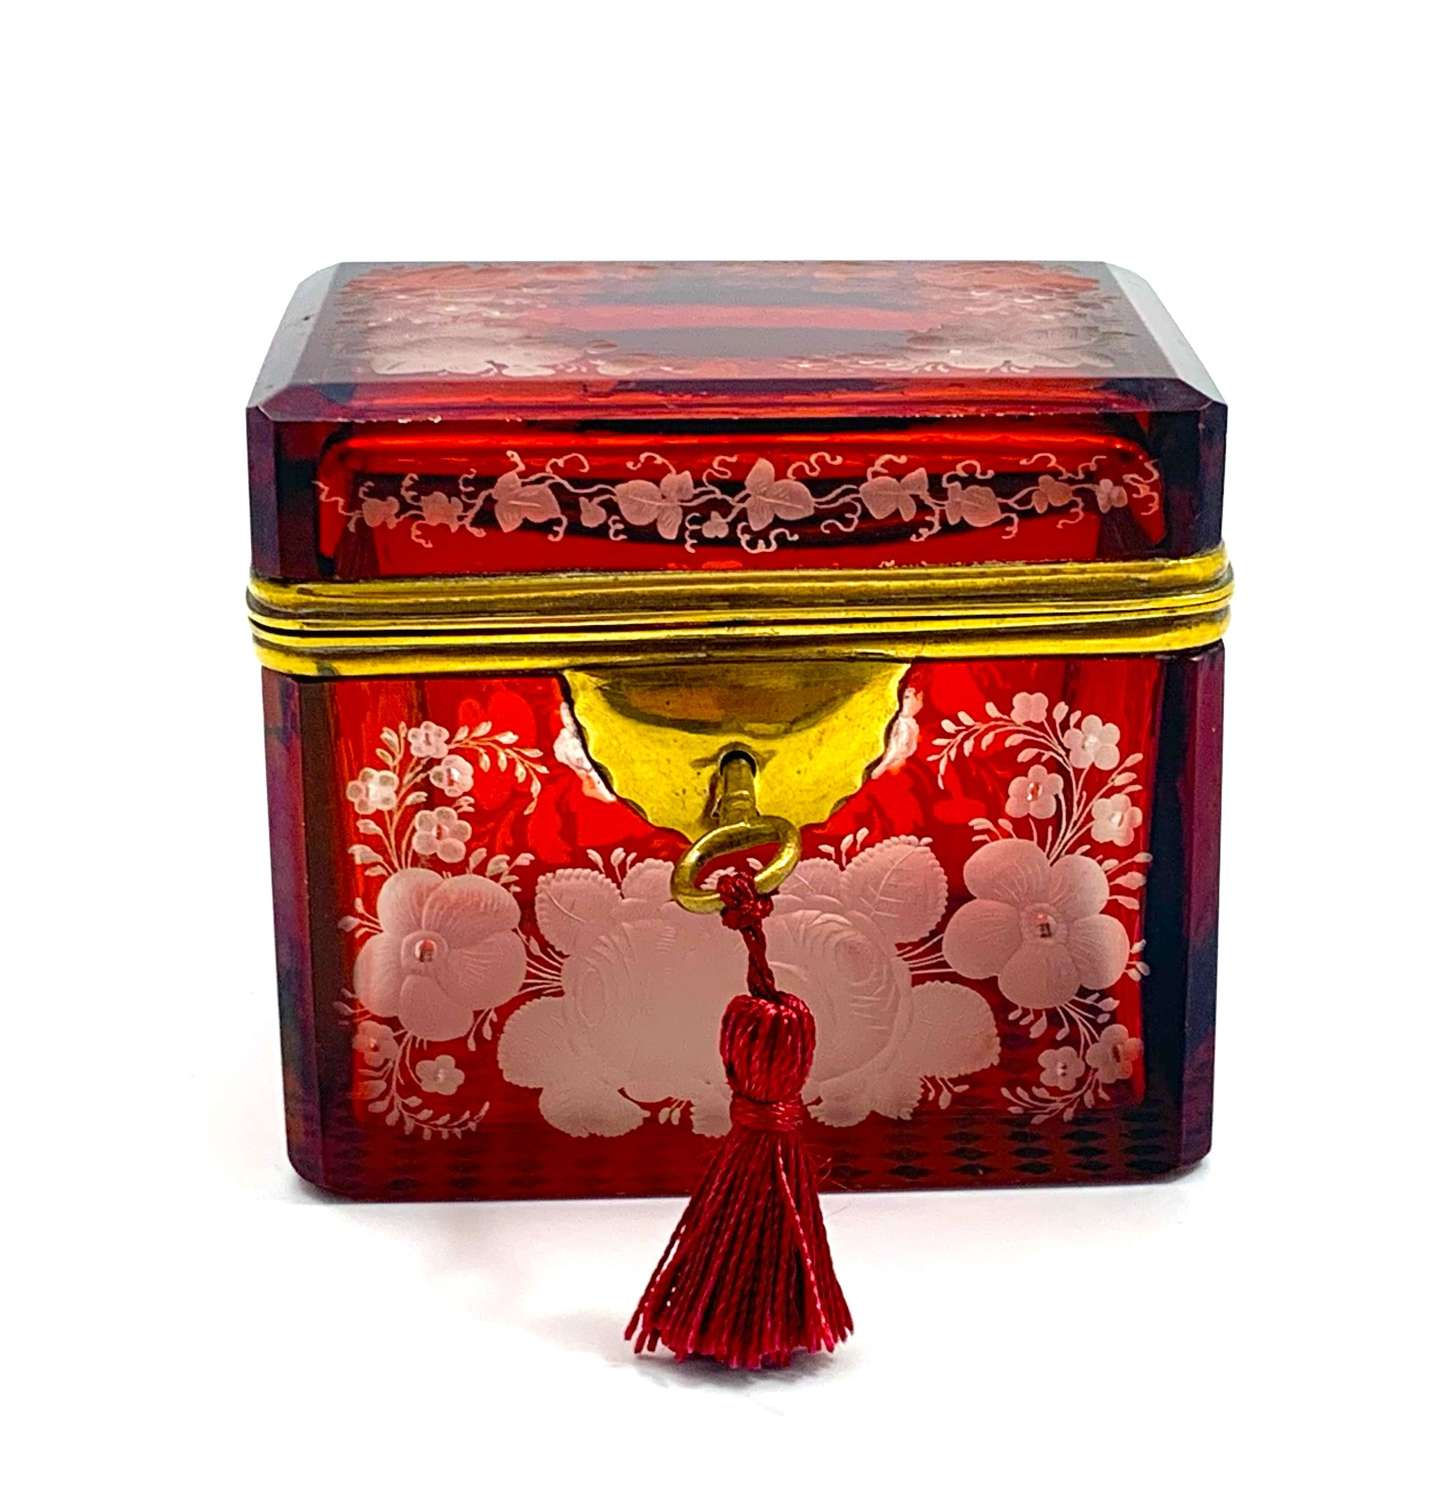 Antique Bohemian Ruby Red Glass Casket Engraved with Large Flowers